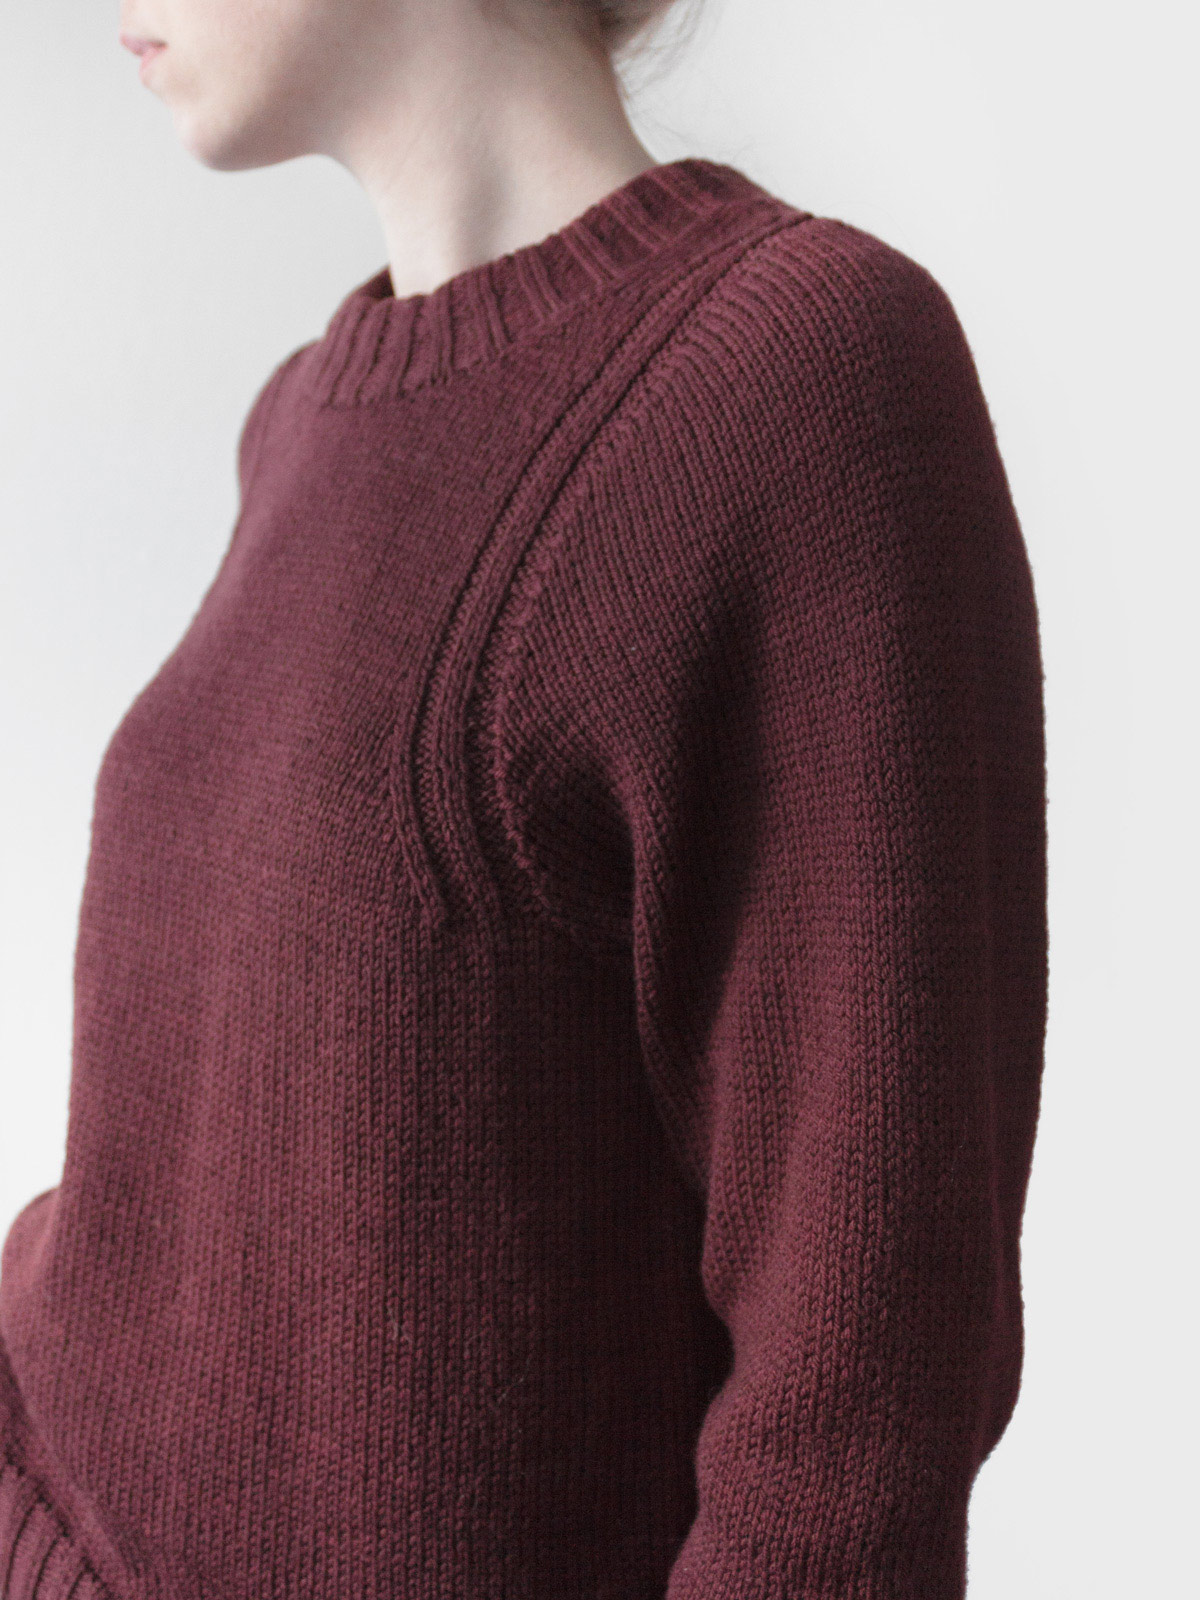 close-up of curved, deep armhole shaping